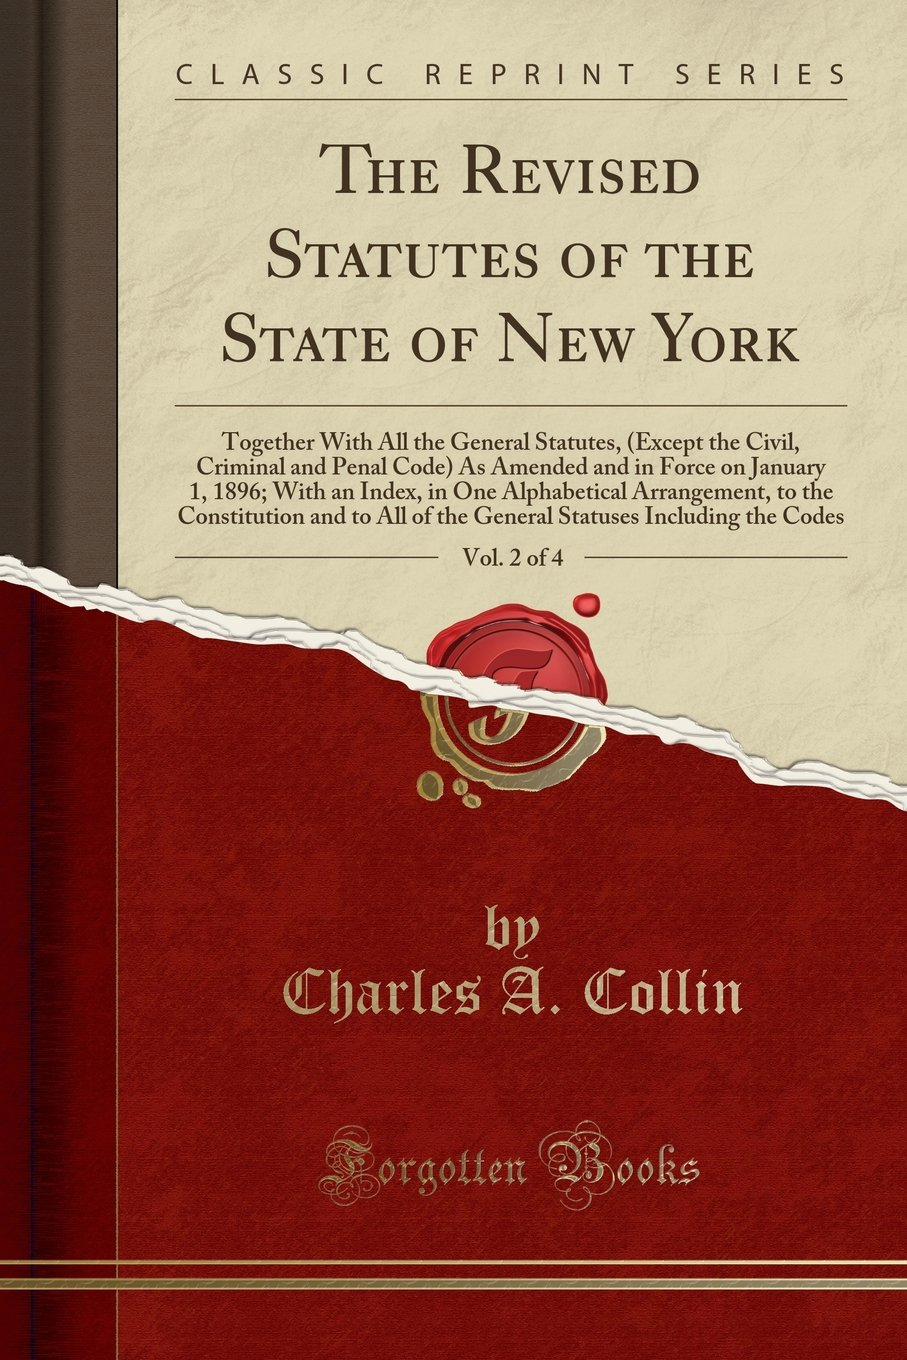 Read Online The Revised Statutes of the State of New York, Vol. 2 of 4: Together With All the General Statutes, (Except the Civil, Criminal and Penal Code) As ... Alphabetical Arrangement, to the Constitution pdf